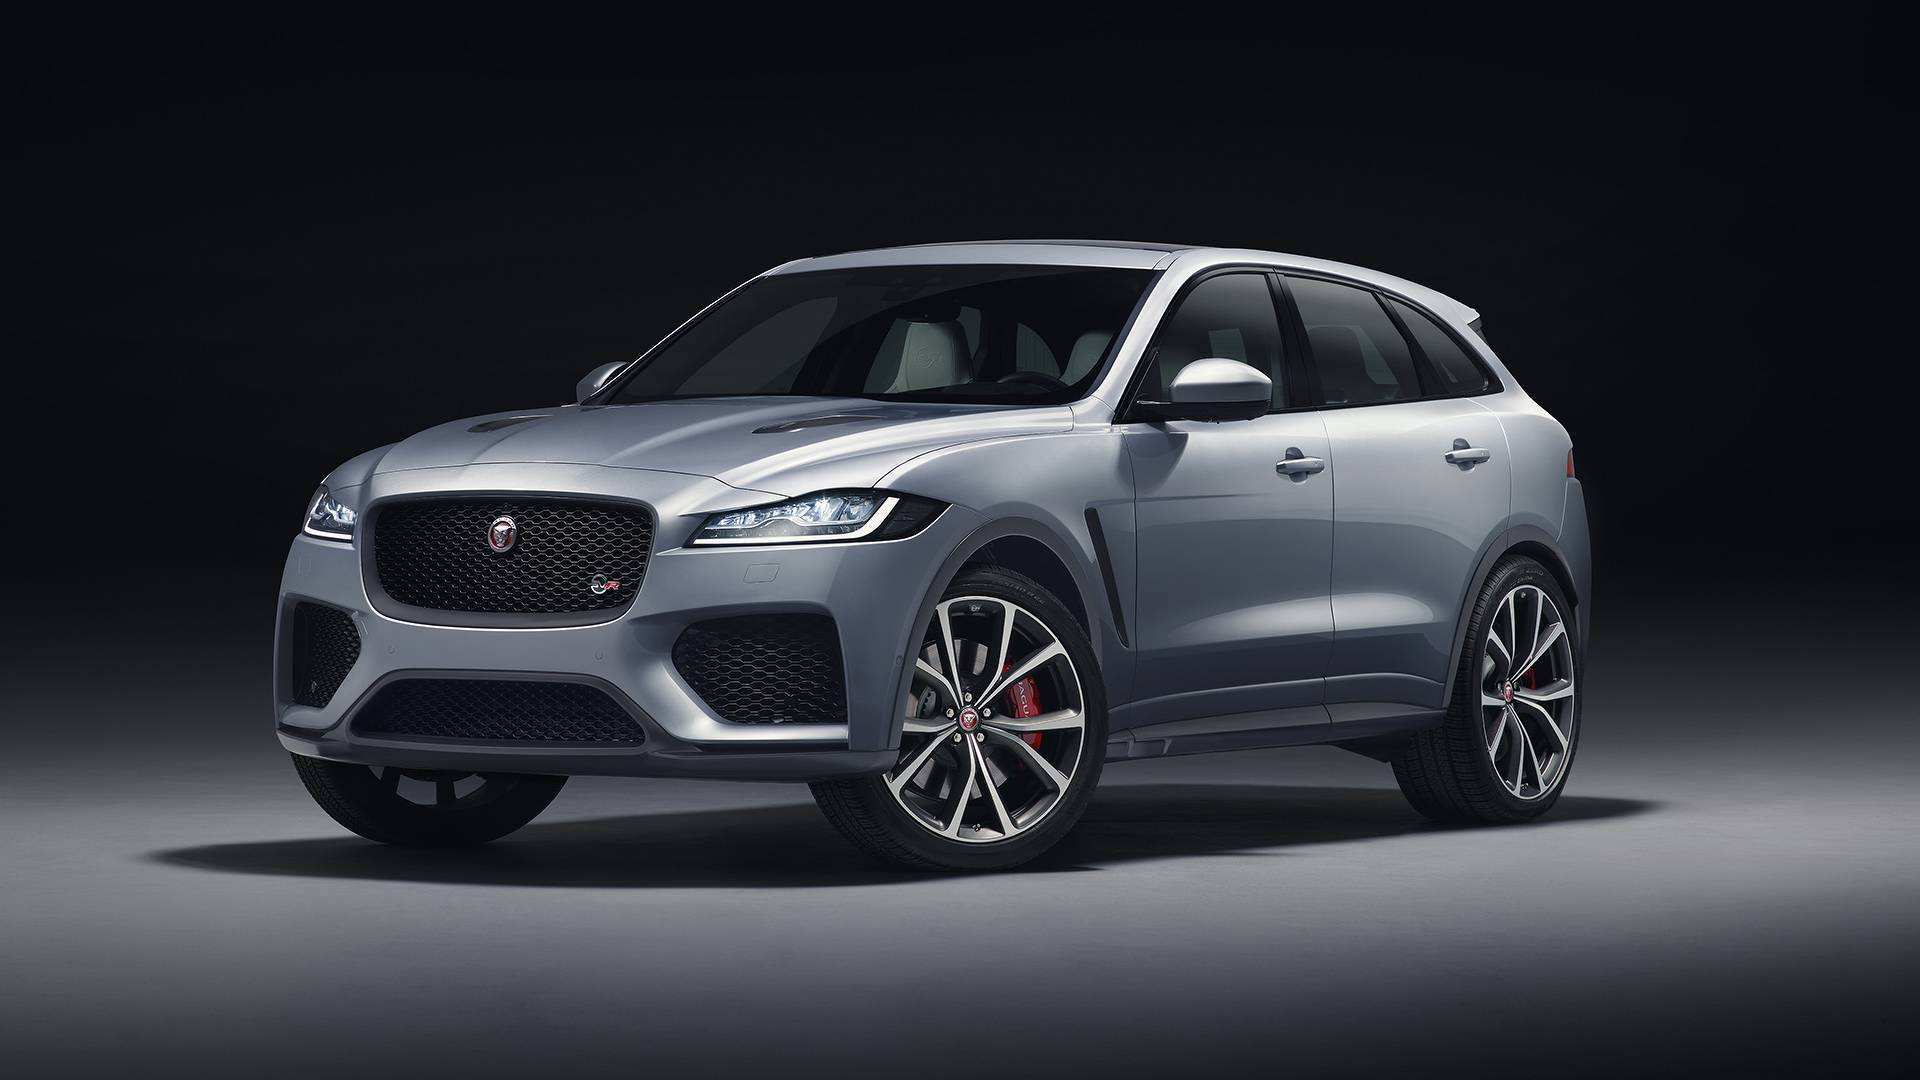 72 The Jaguar E Pace Ibrida 2020 Spesification for Jaguar E Pace Ibrida 2020